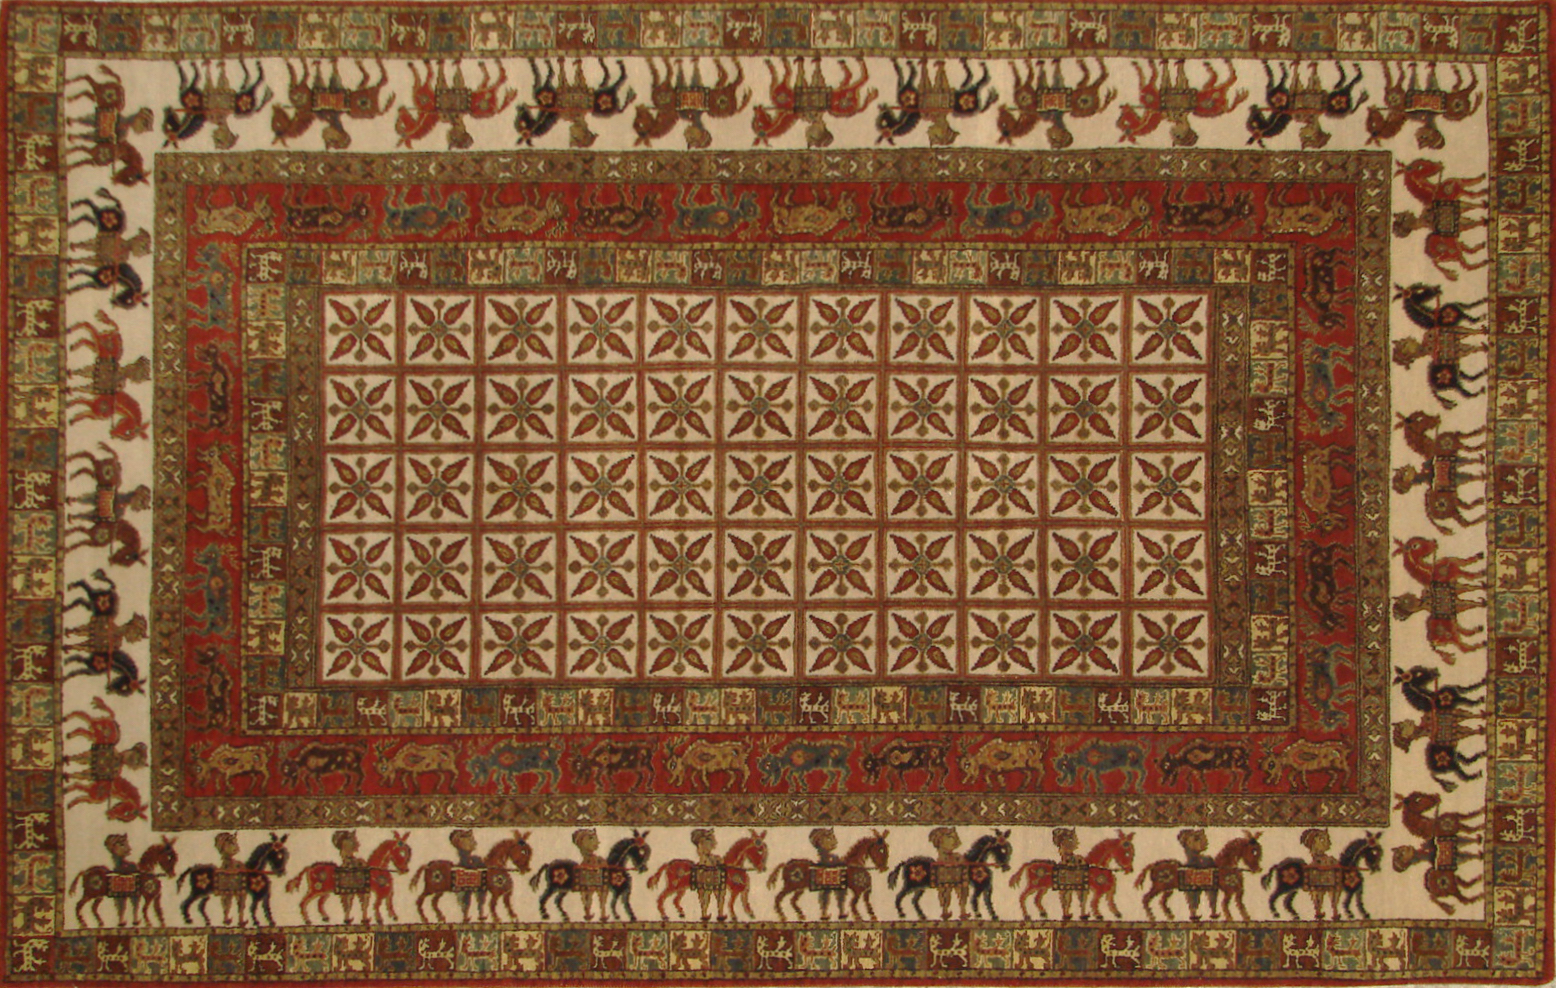 5x7/8 Antique Revival Hand Knotted Wool Area Rug - MR19914